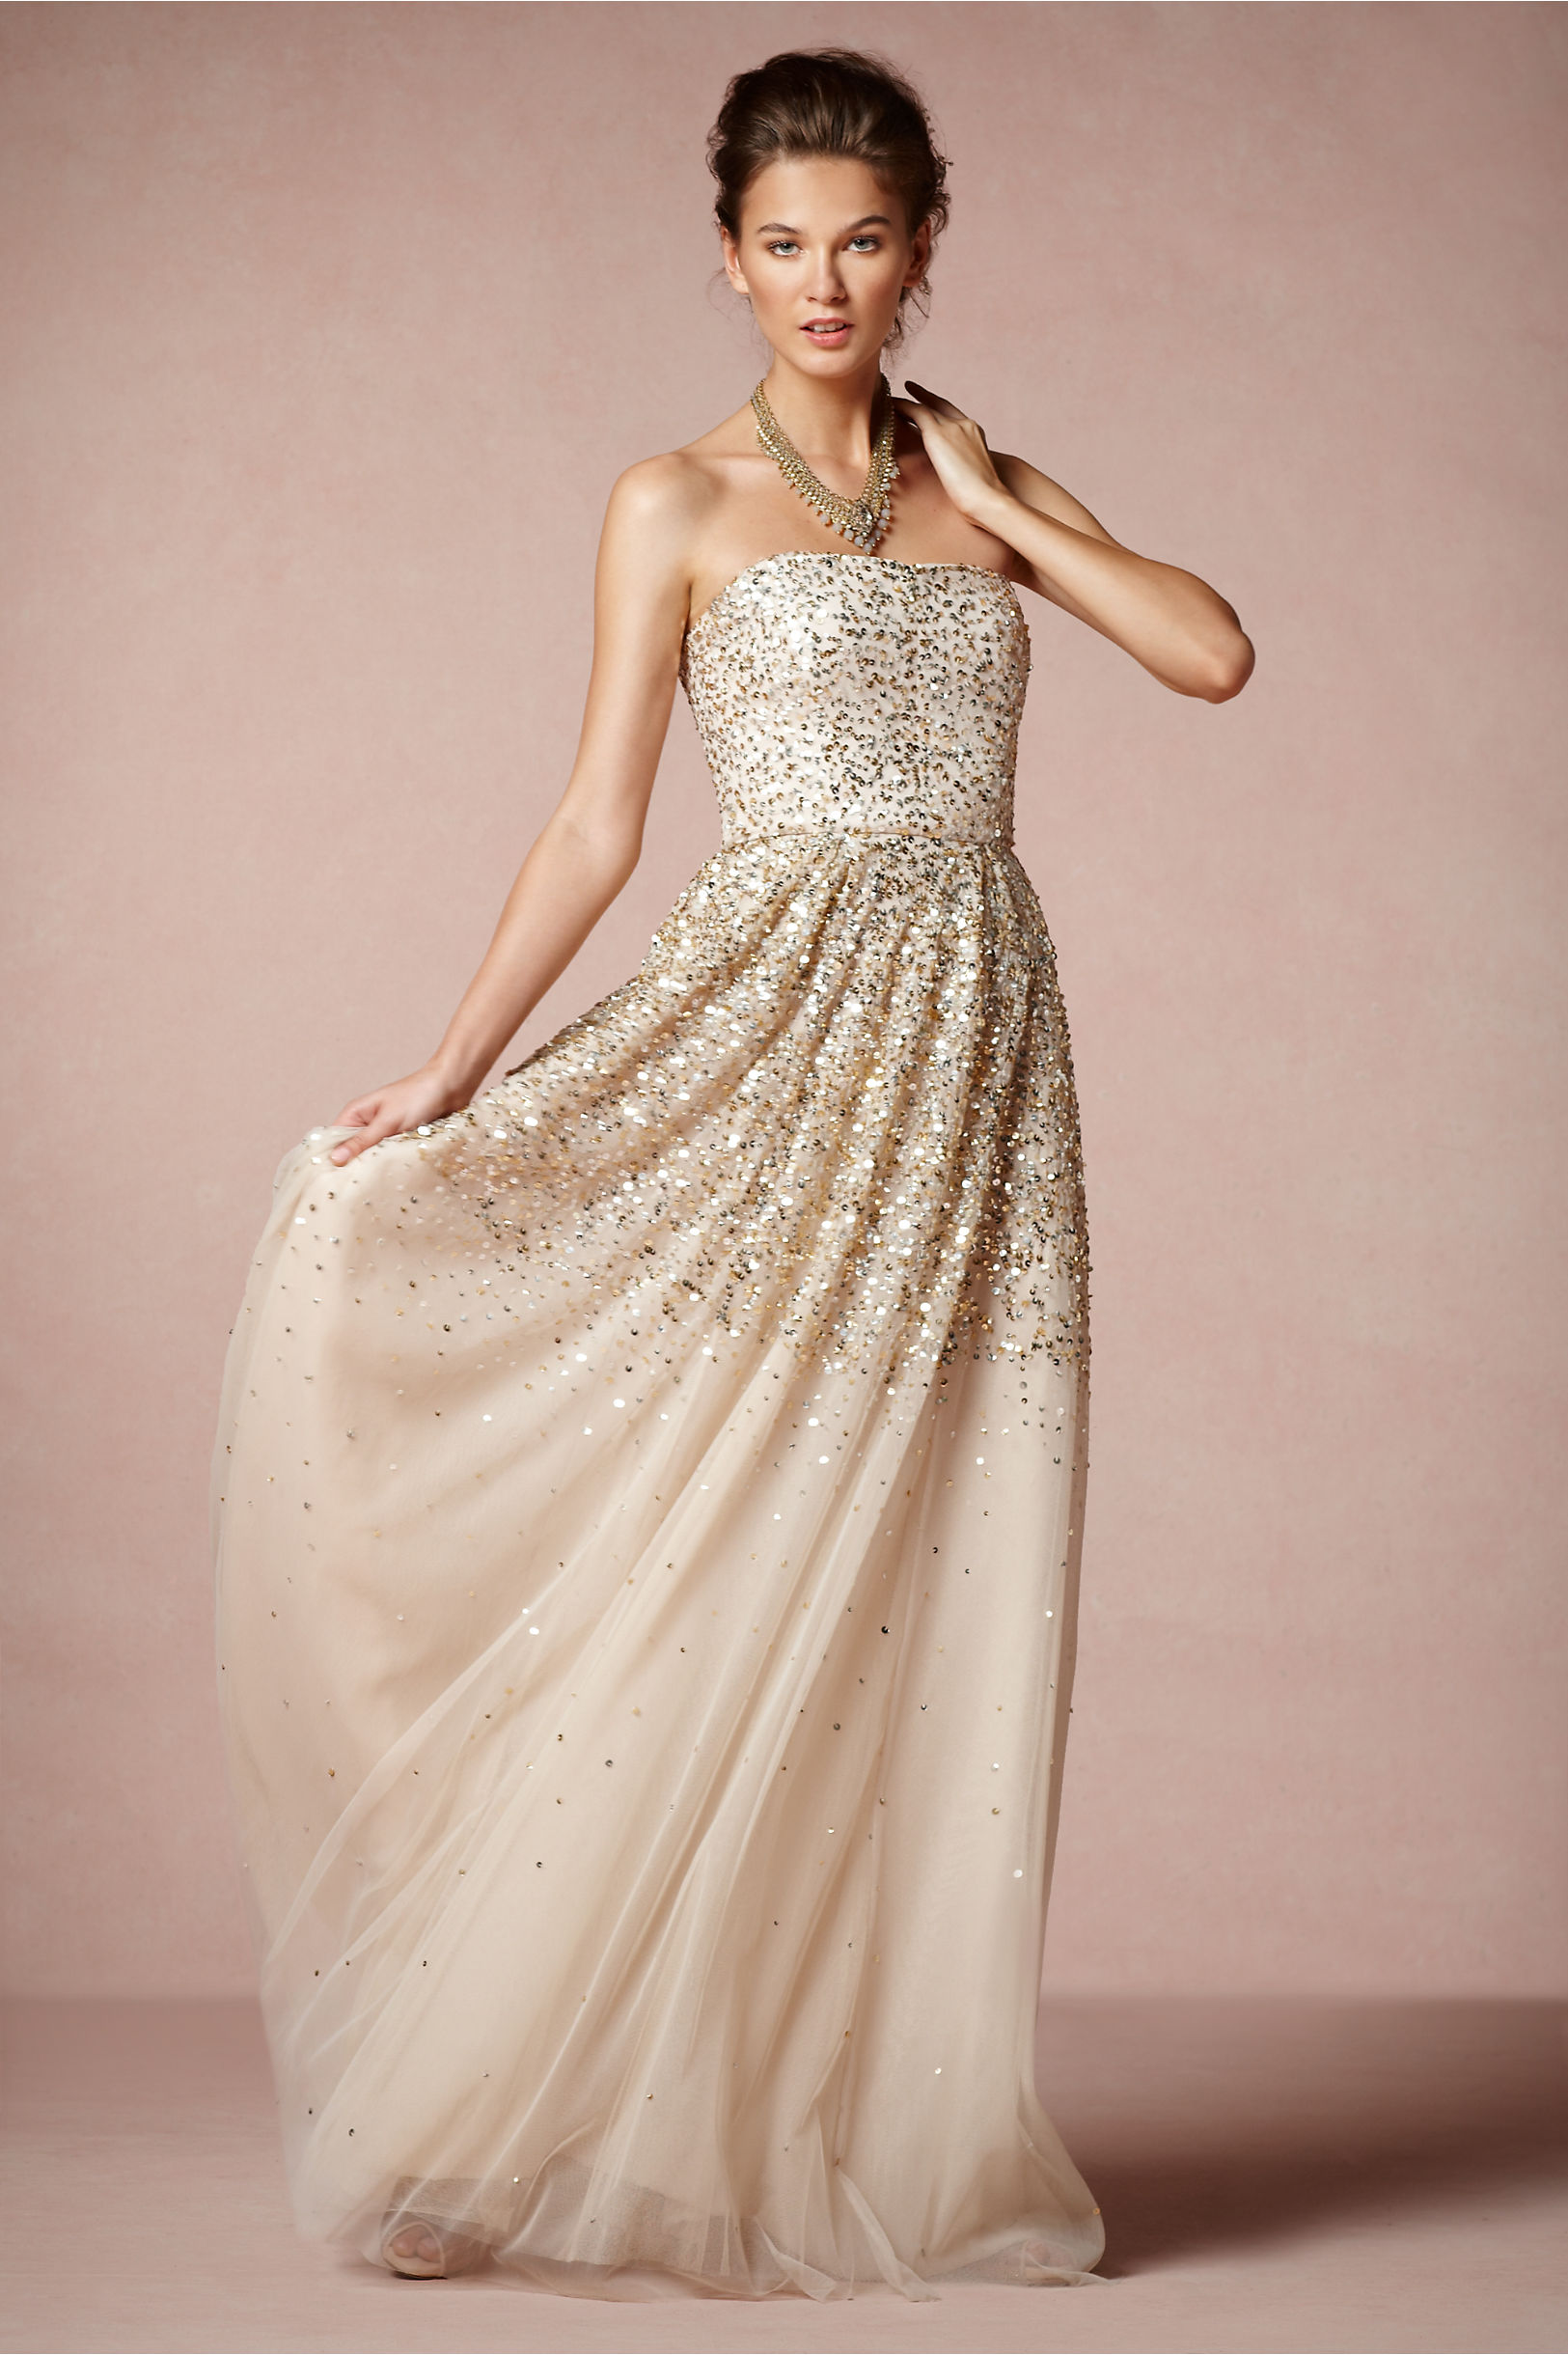 Isadora gown in bride bhldn rachel gilbert champagne isadora gown bhldn ombrellifo Choice Image